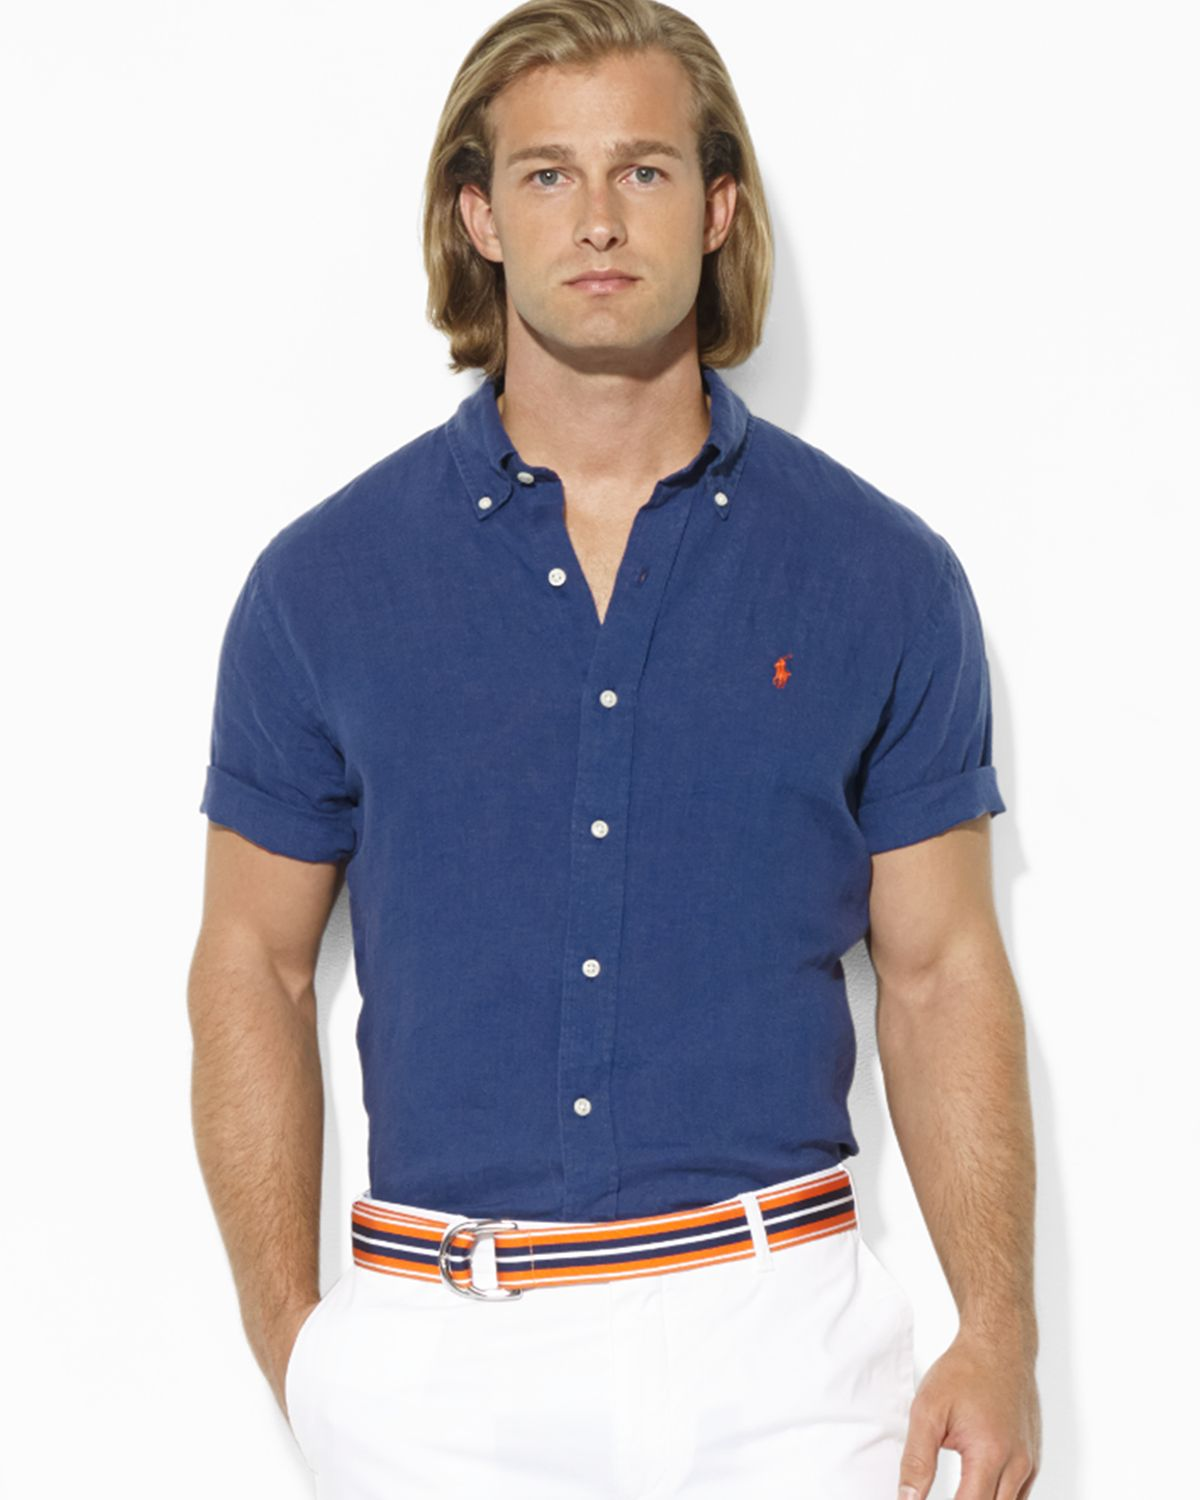 a750431715 Polo Ralph Lauren Custom Fit Shirt Linen Navy